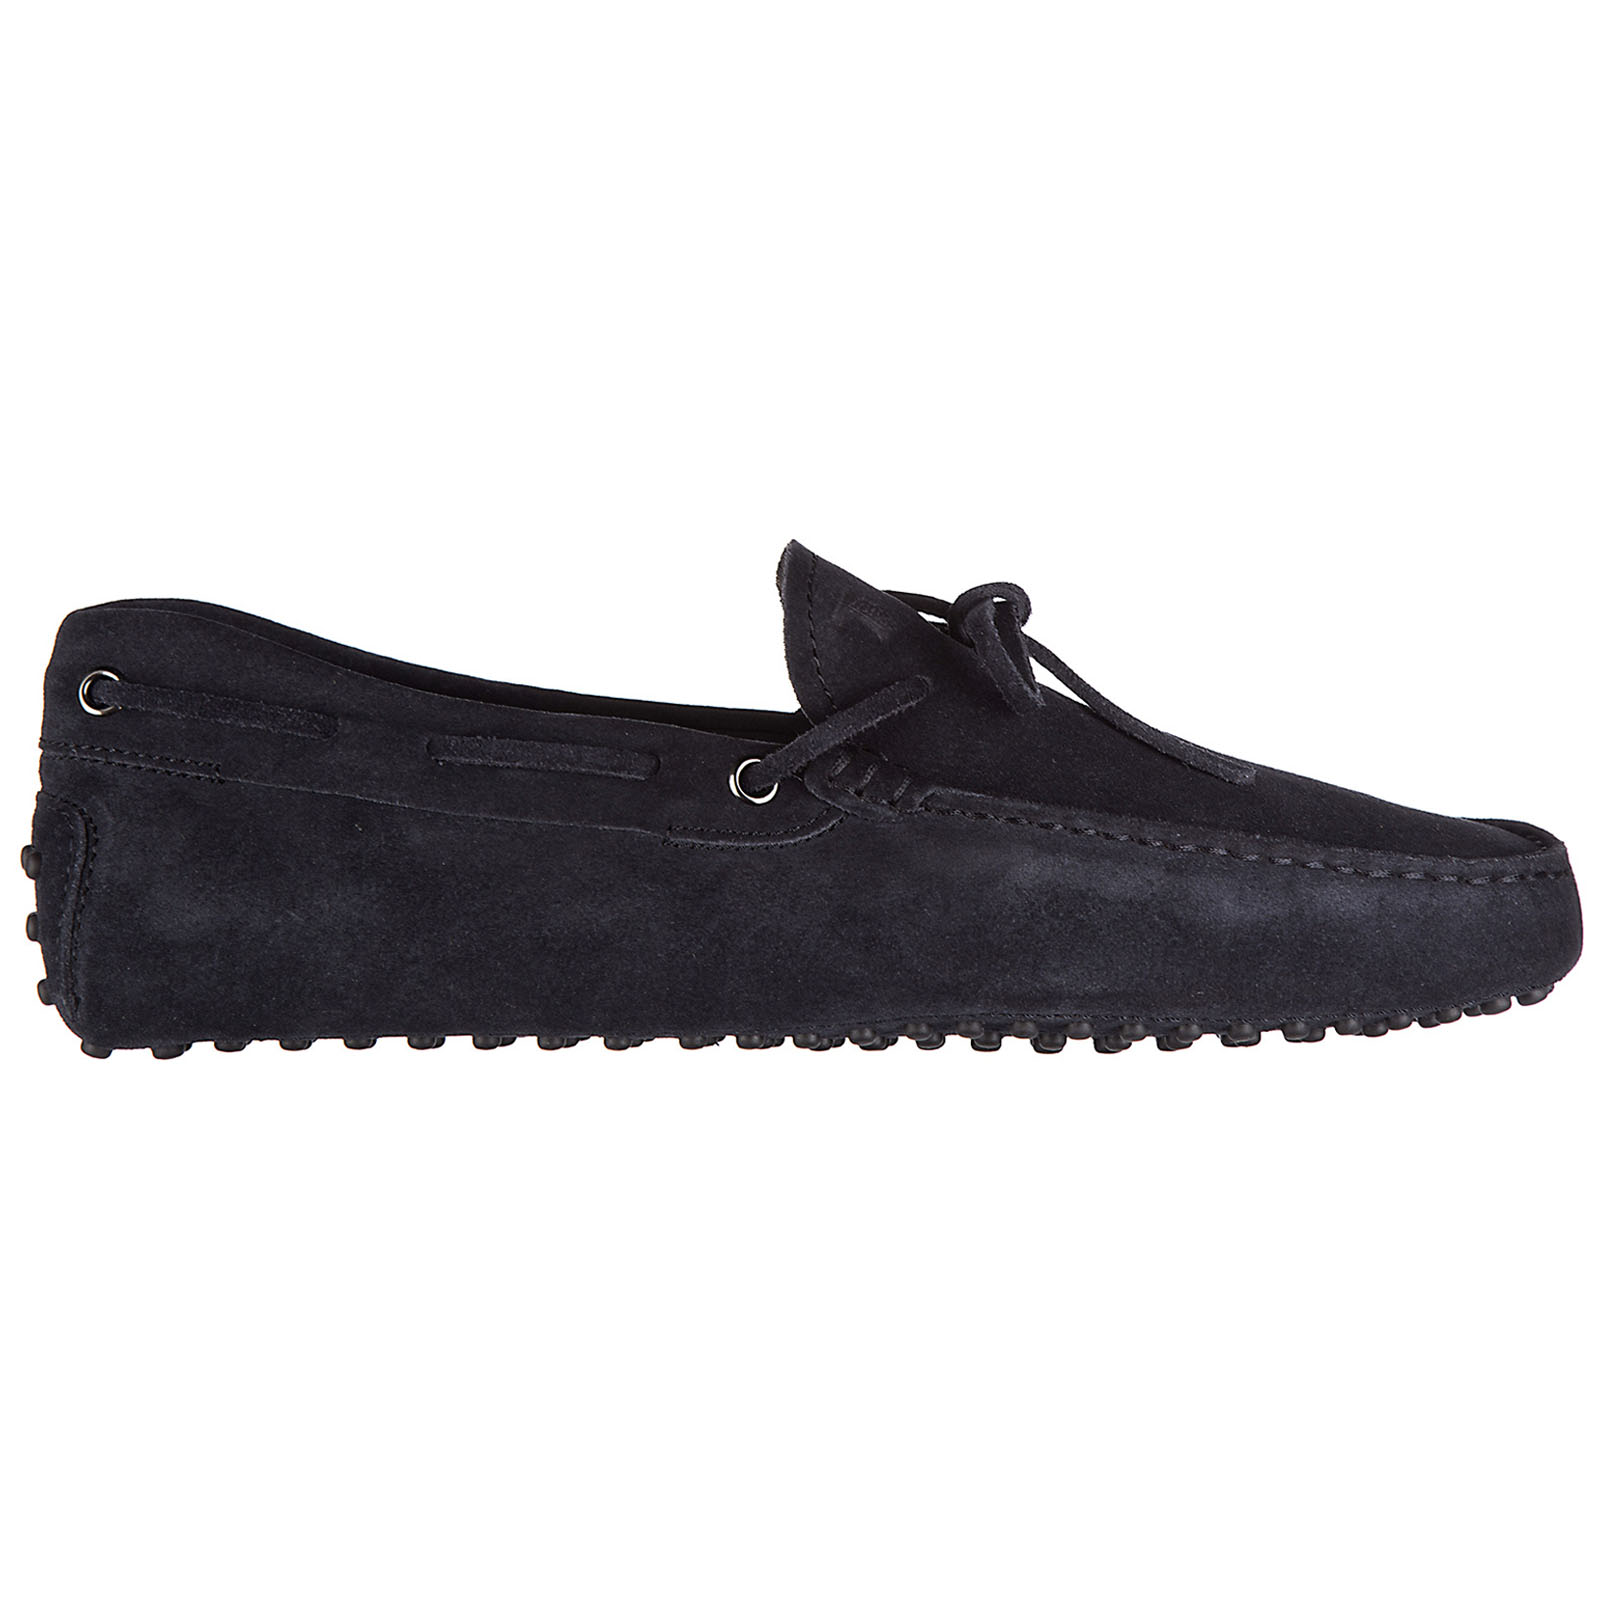 Wildleder mokassins herren slipper laccetto gommino